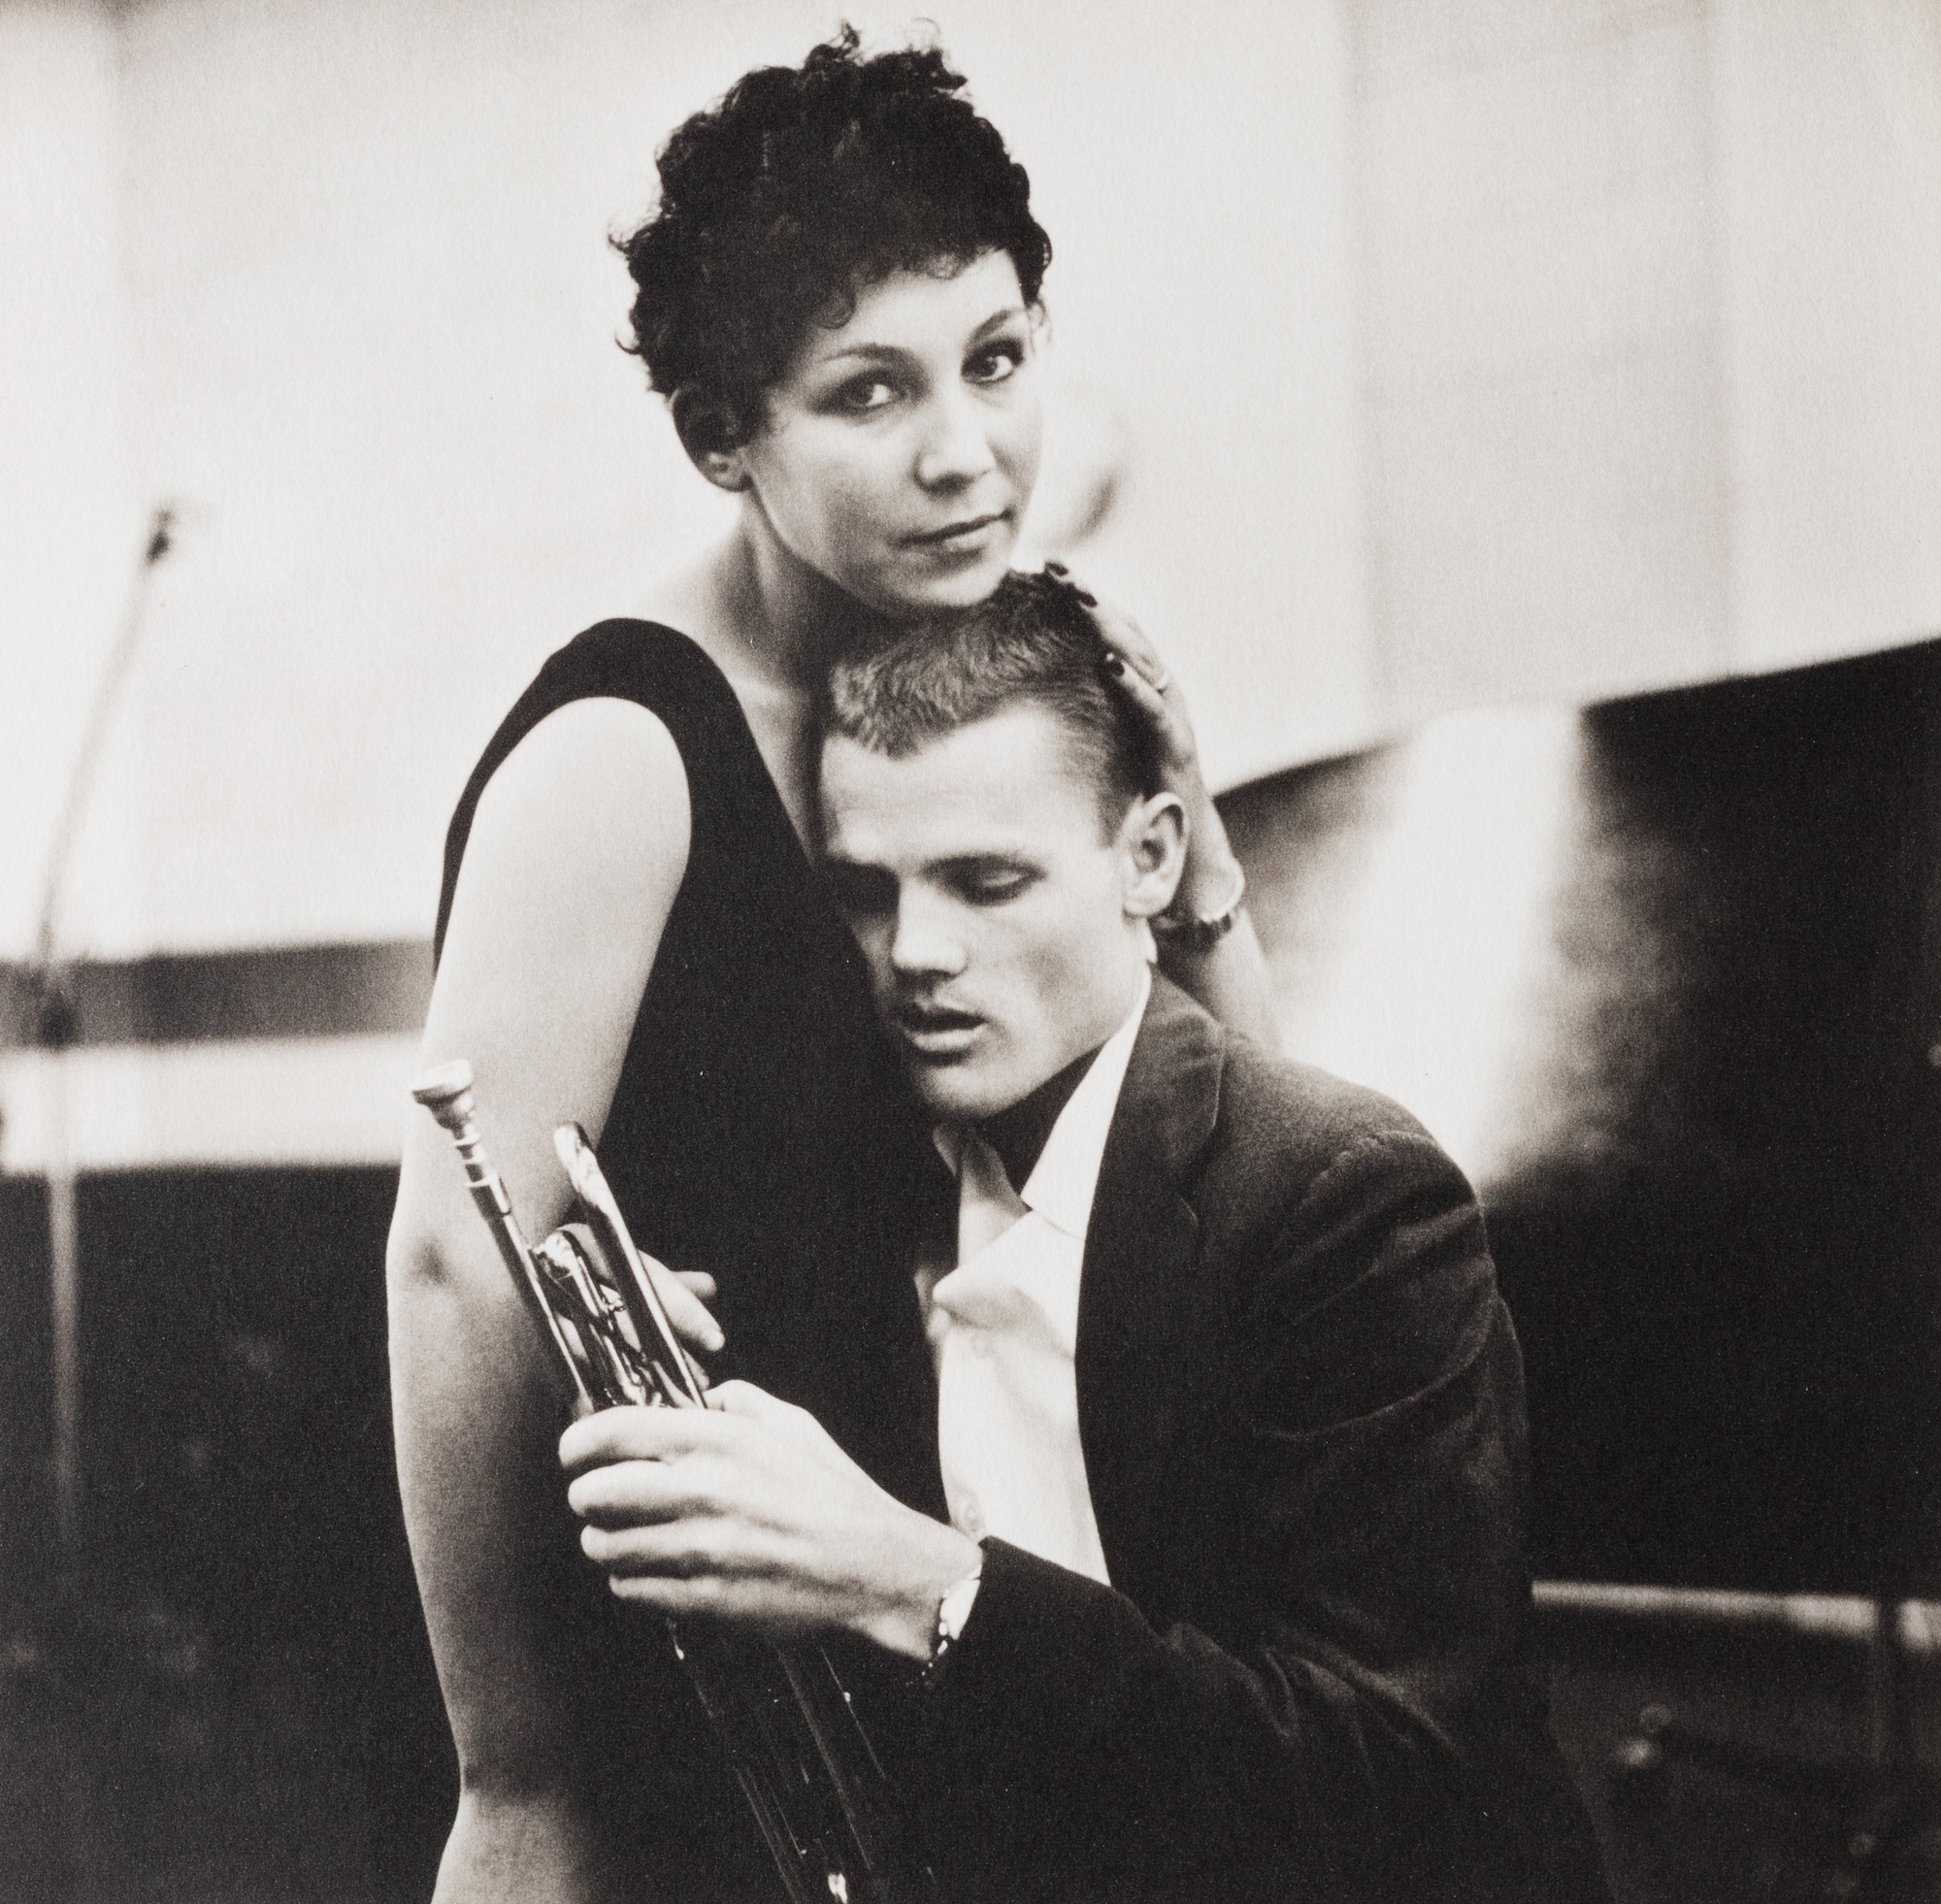 Chet Baker and Lili, Hollywood, 1955